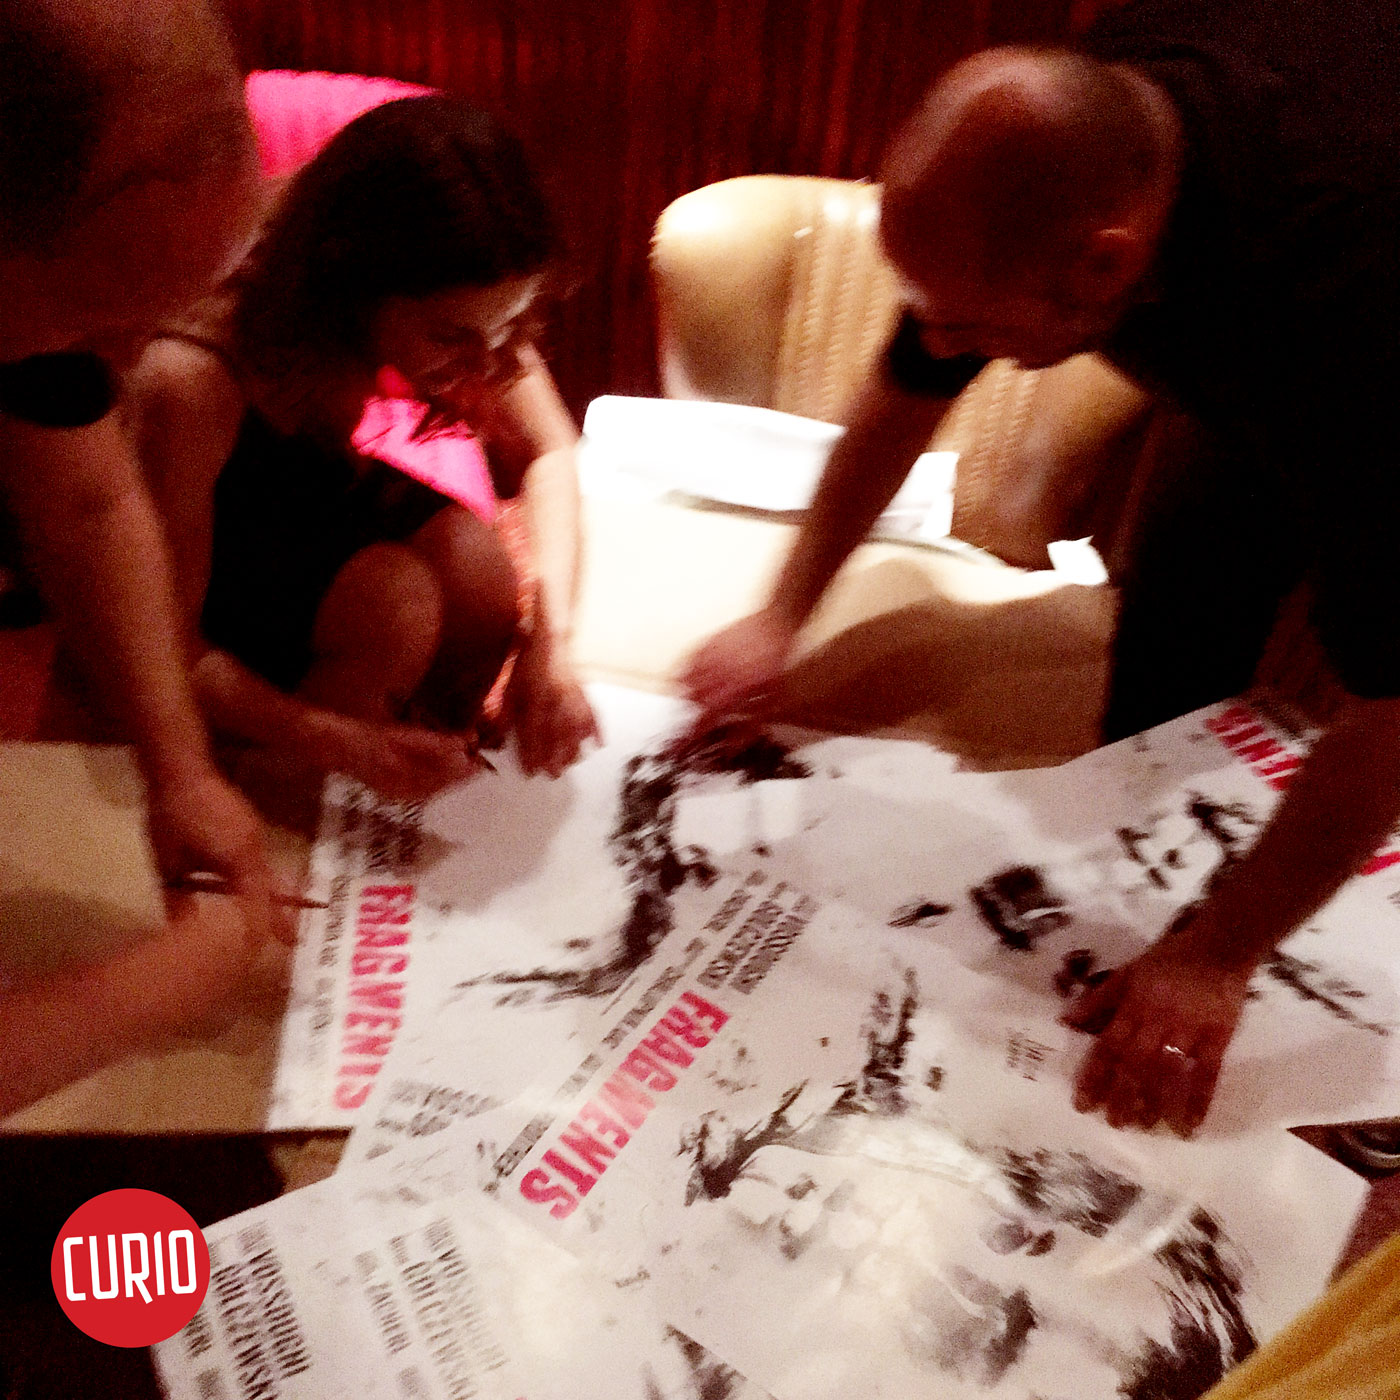 Cast and crew at premier of Fragments signing the film poster - poster design by Cesare Asaro of Curio & Co.